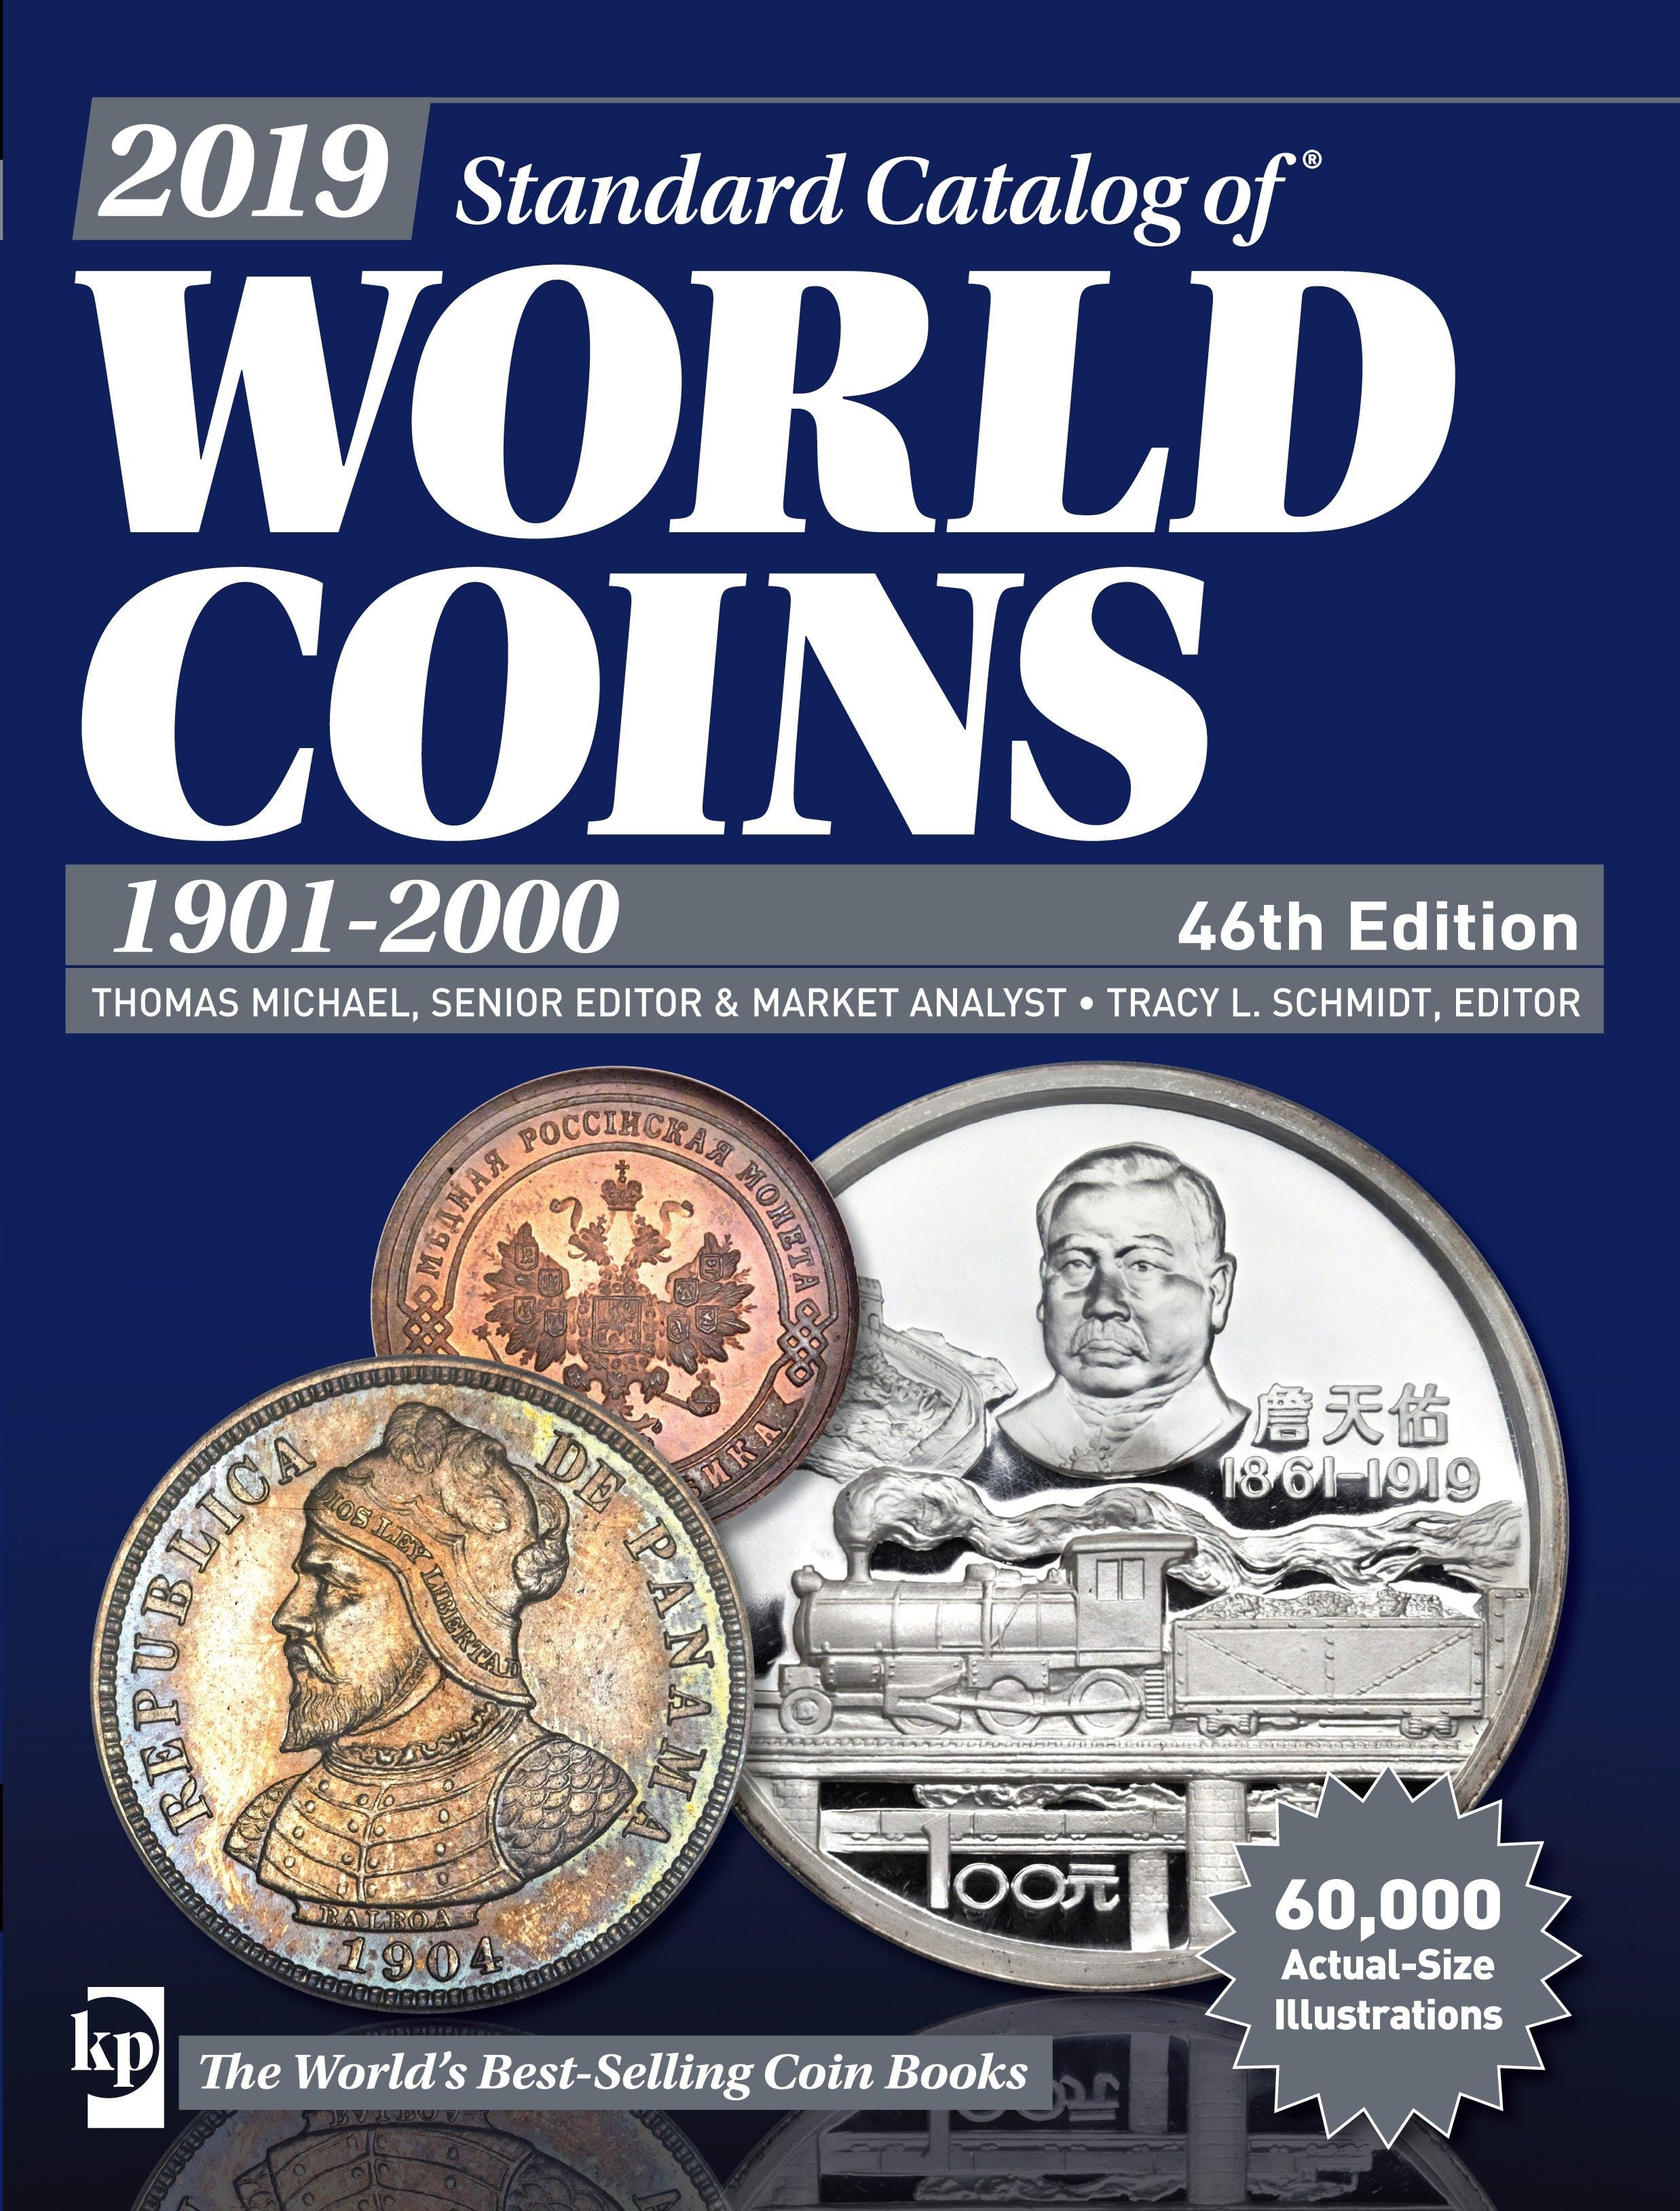 Krause Standard Catalog of World Coins 1901-2000 46th Edition